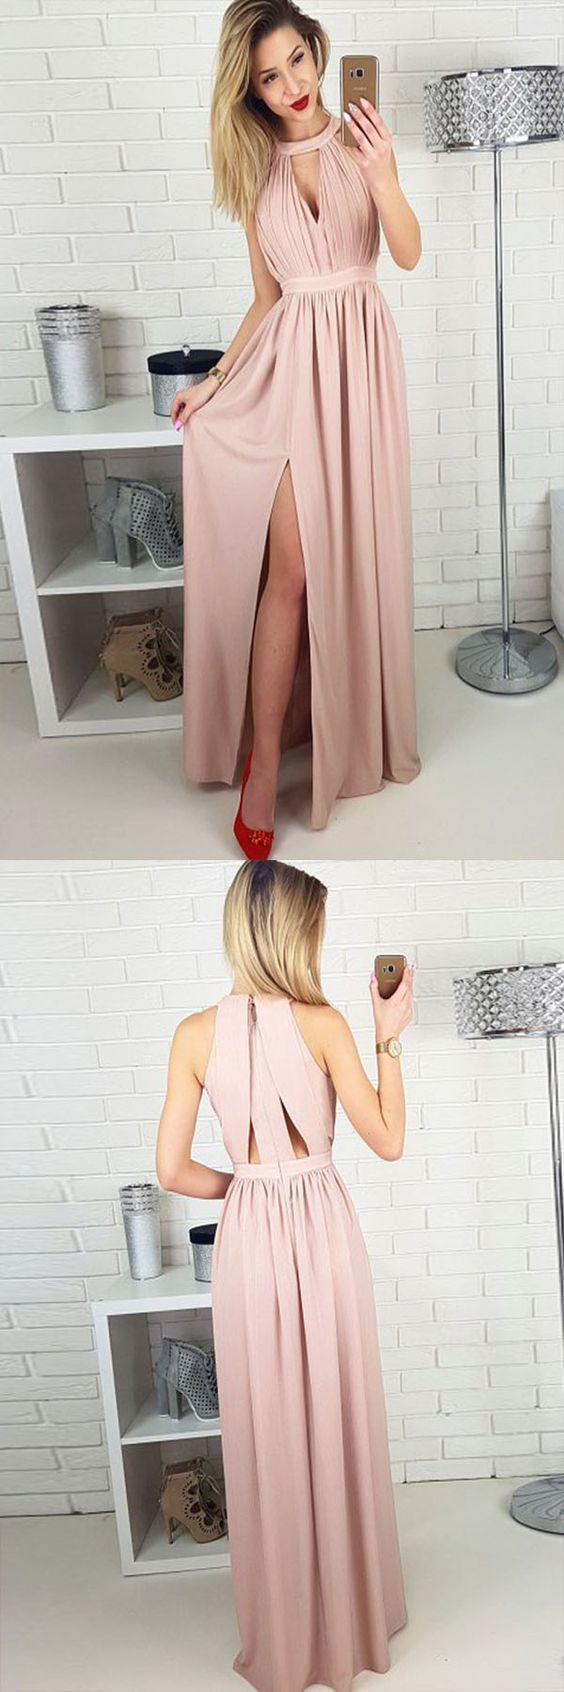 Simple A-Line Jewel Floor-Length Blush Prom Dress , Modest Chiffon Party Dress with Keyhole,F0012